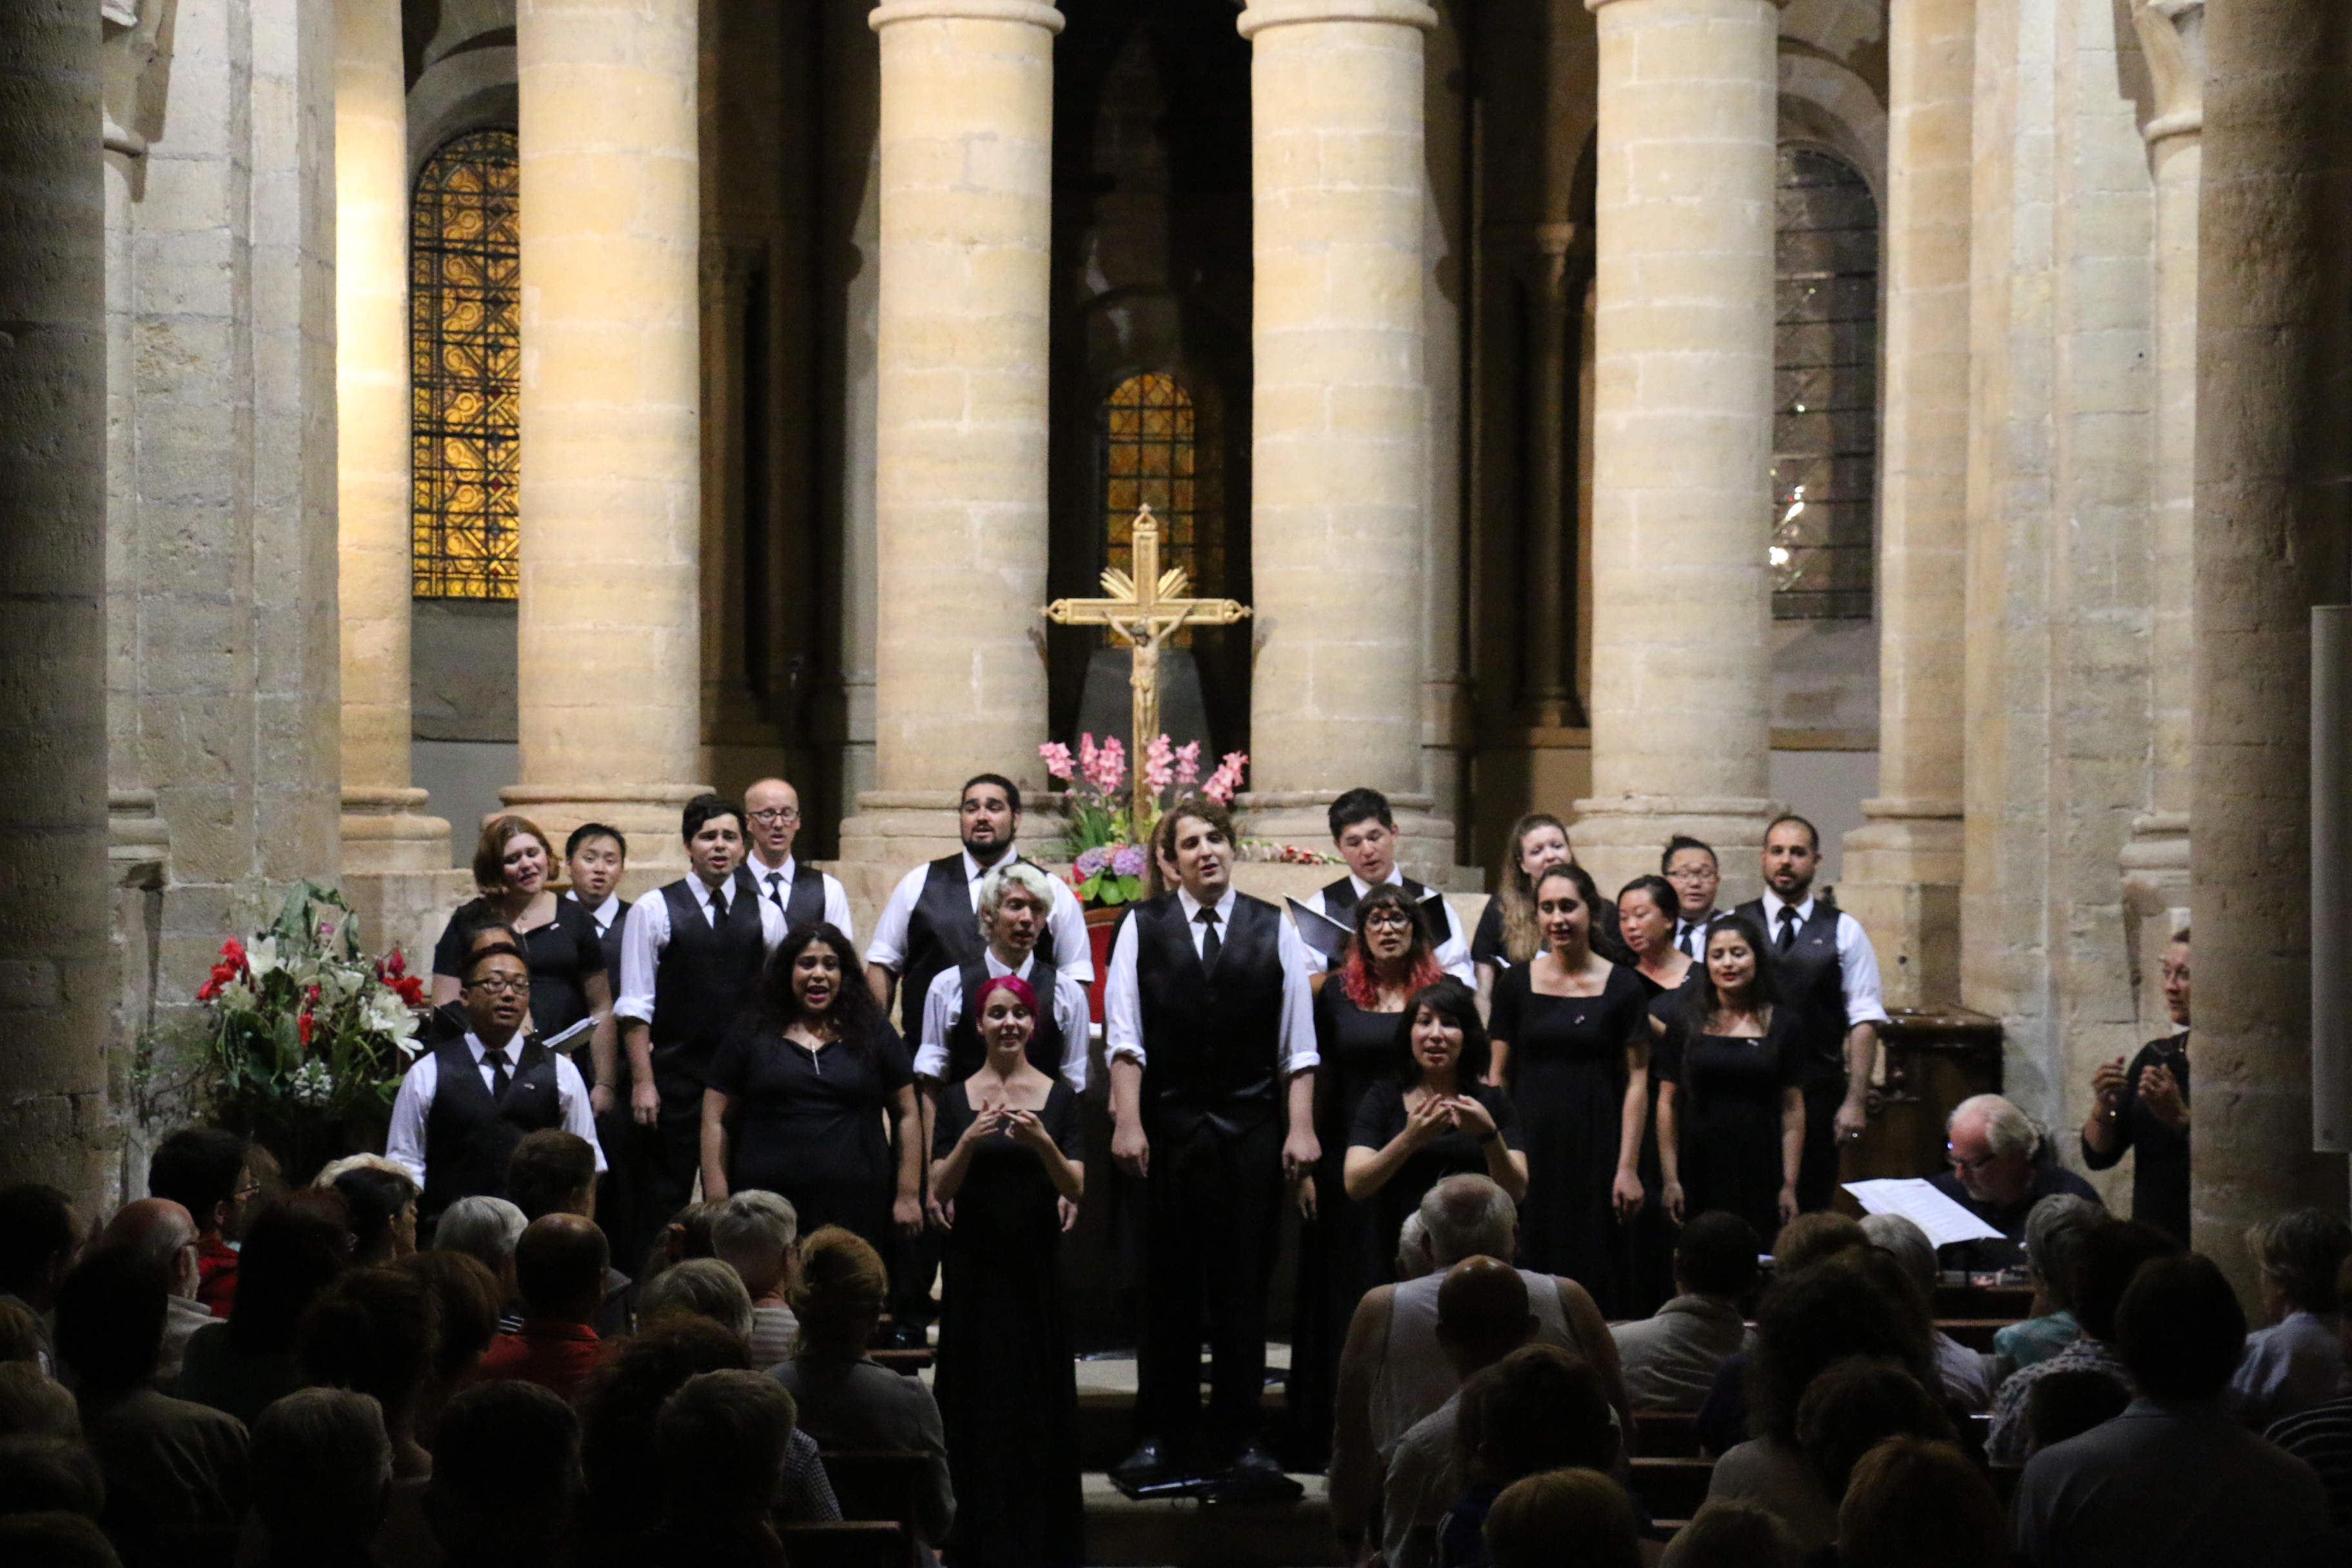 The City Singers perform in Southern France July 2016!